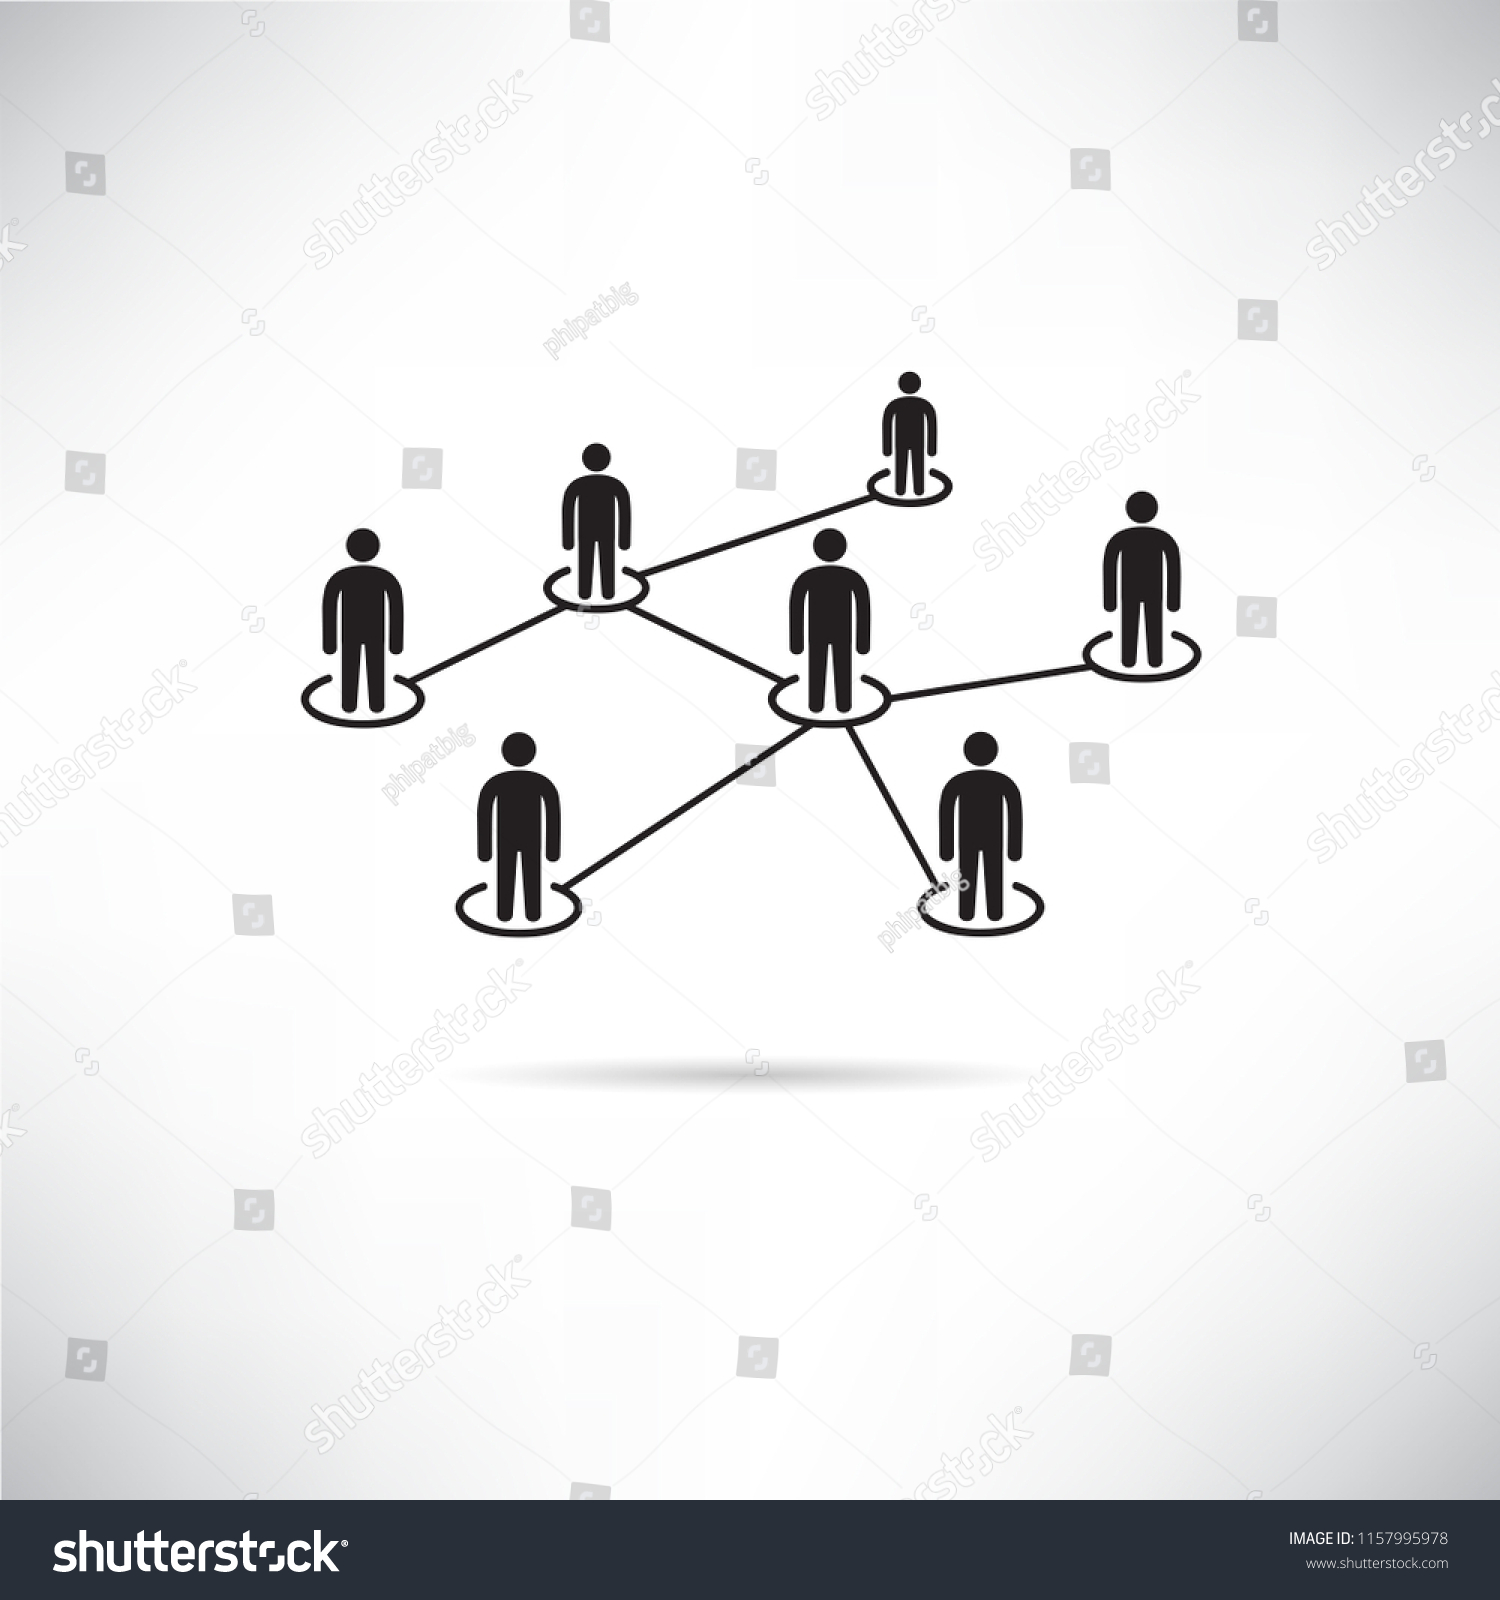 People Network Connection Diagram Icon Stock Vector Royalty